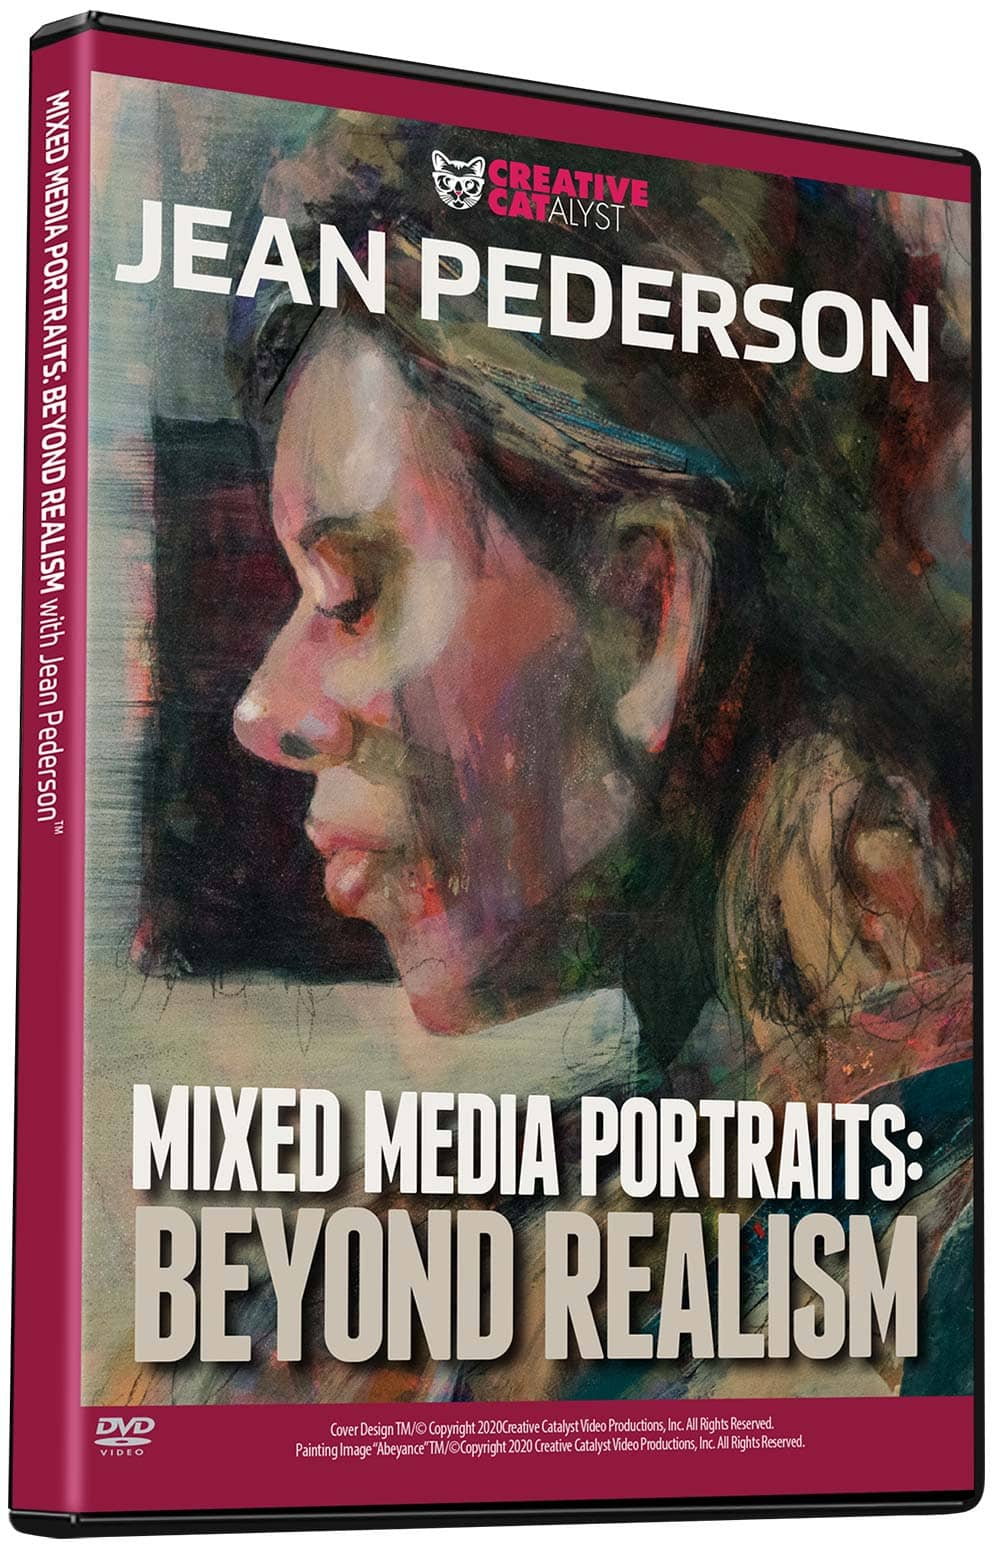 Mixed Media Portraits: Beyond Realism with Jean Pederson